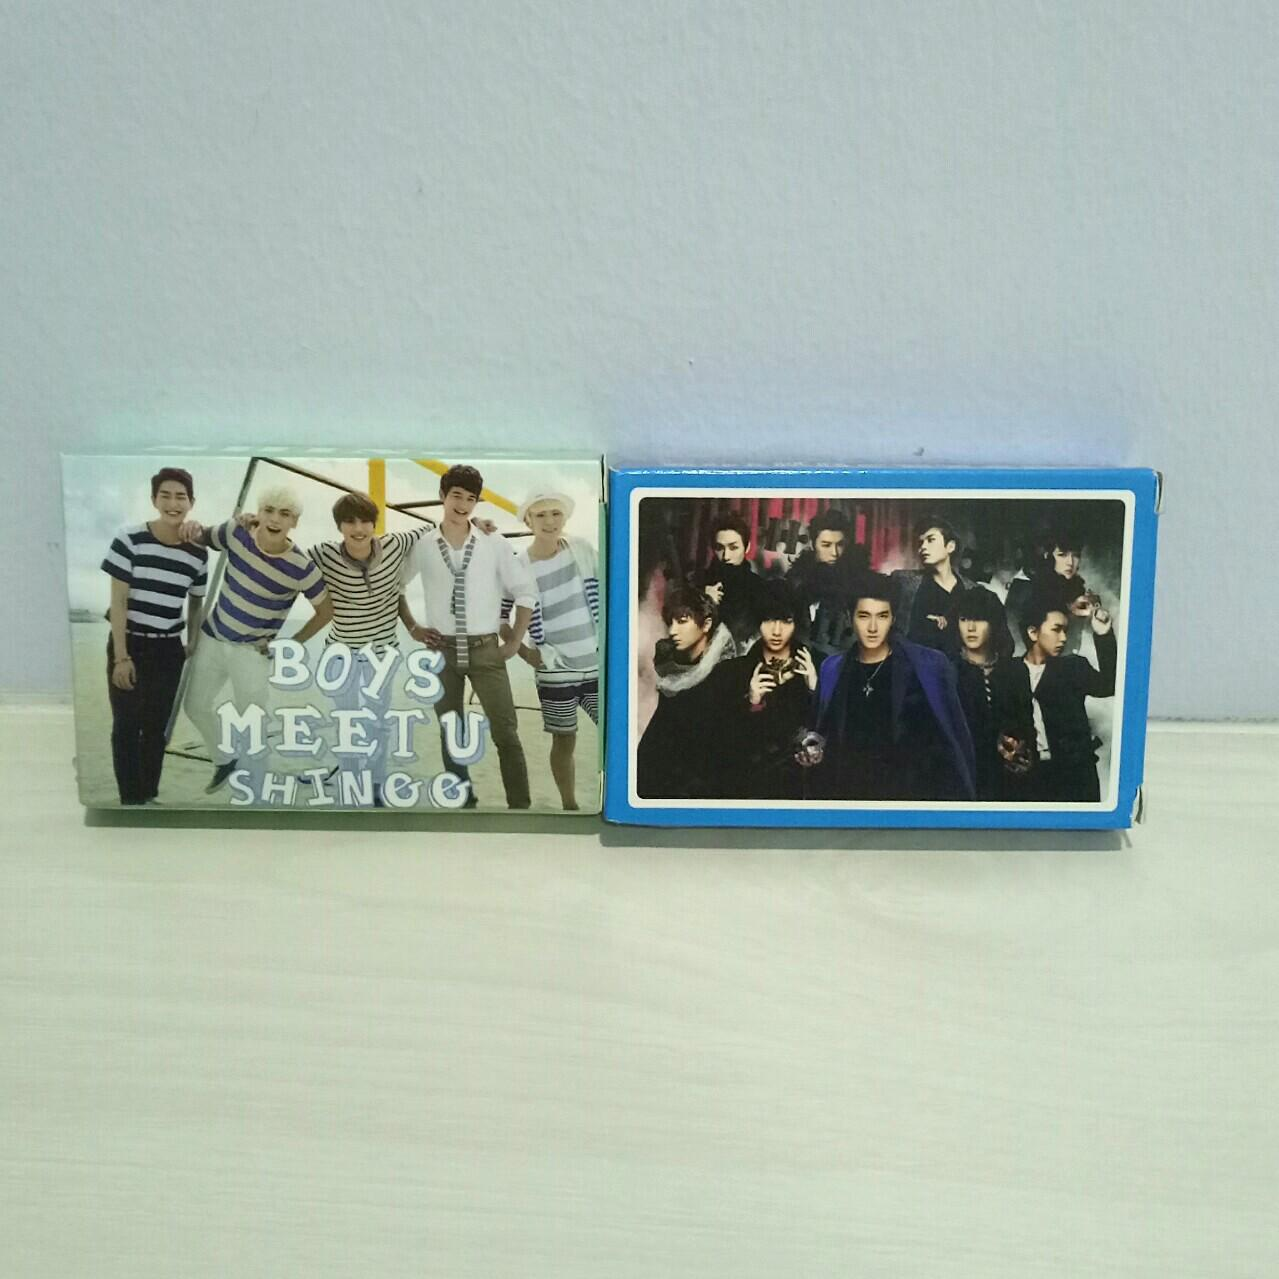 [WTS] KPOP POKER PLAYING CARD (SUPER JUNIOR/SHINee)